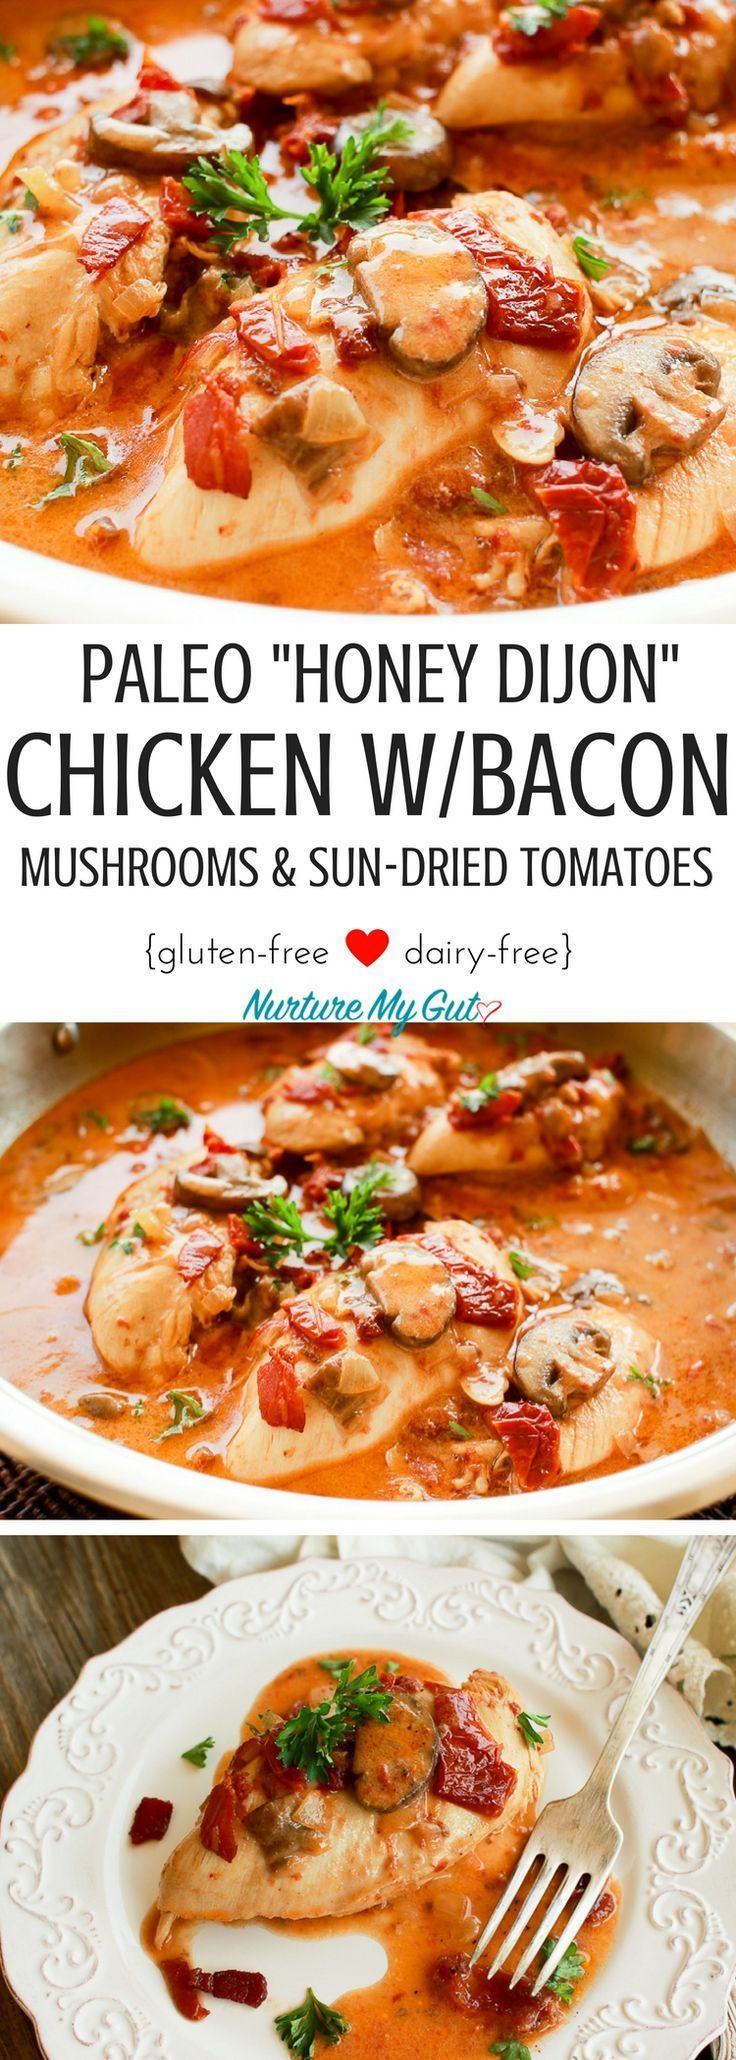 This Paleo Honey Dijon Chicken with Bacon, Mushrooms & Sun-Dried Tomatoes is the best clean eating, finger licking chicken recipe made in 35 minutes or less!  Easy one pot meal the whole family will love! Paleo, Dairy Free, Gluten Free, Corn Free.